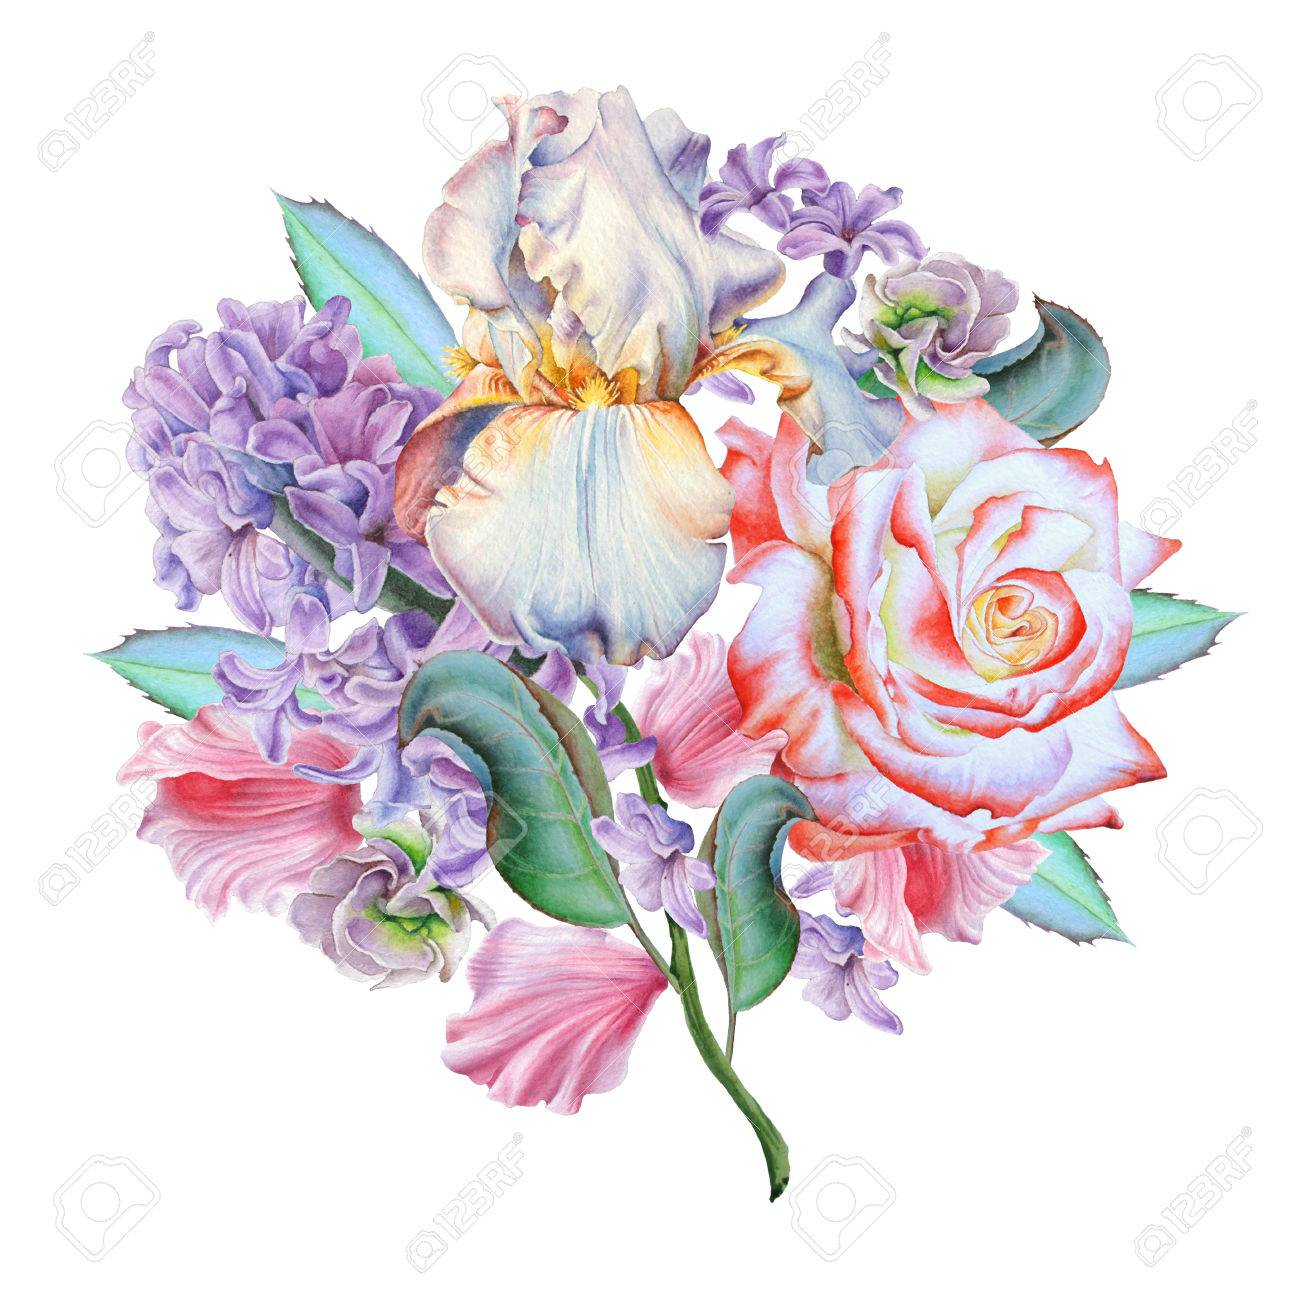 Watercolor bouquet with flowers rose iris hyacinth watercolor bouquet with flowers rose iris hyacinth illustration hand drawn dhlflorist Choice Image